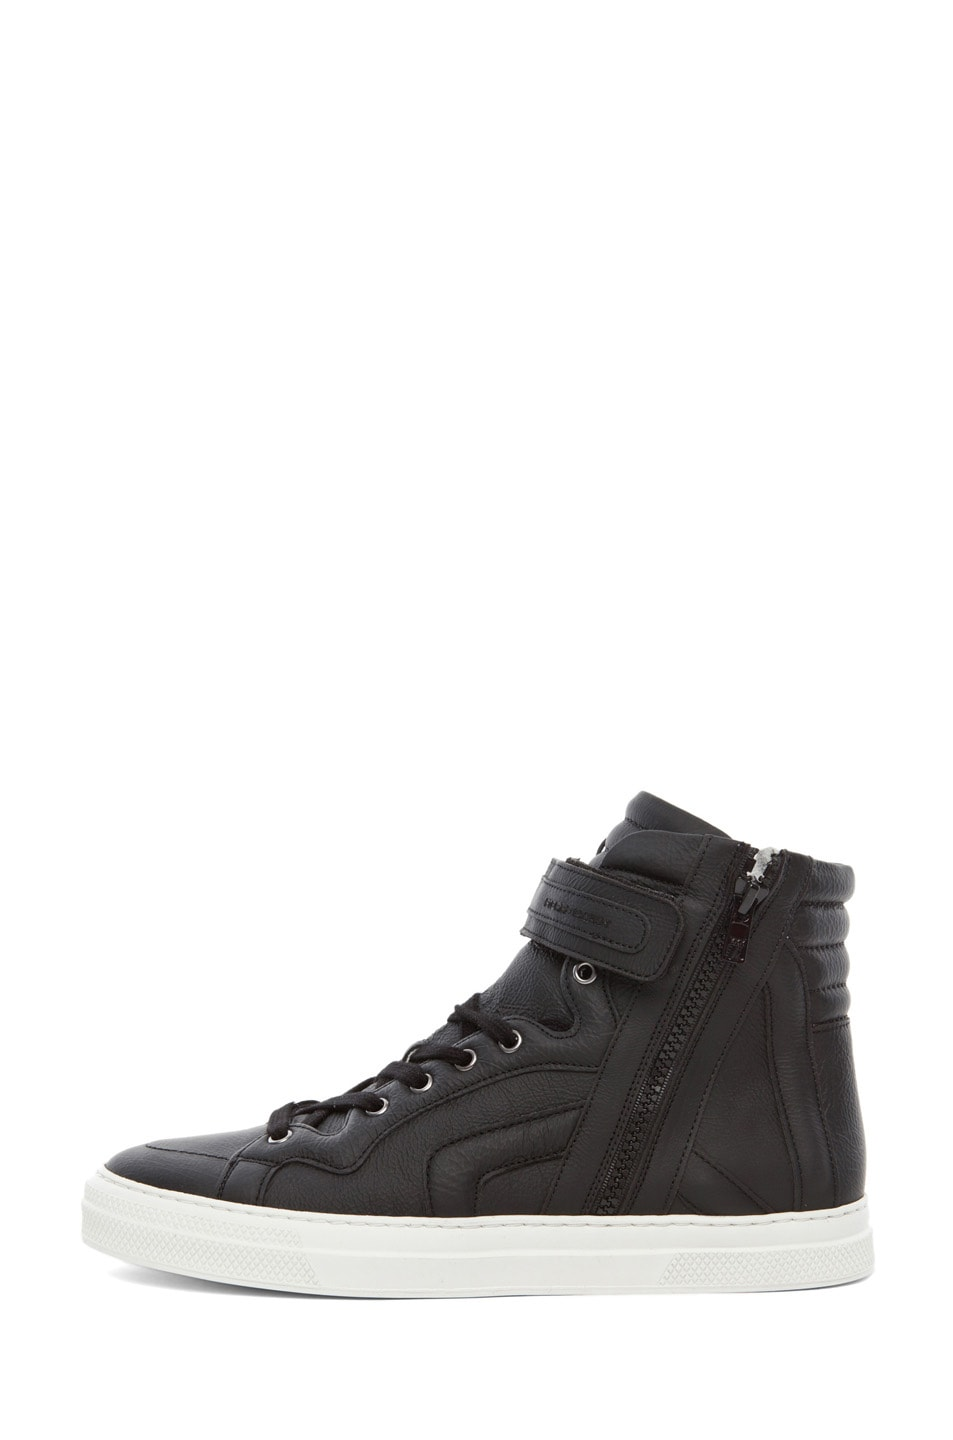 Image 1 of Pierre Hardy Paper Calf Hi Top Sneaker in Black